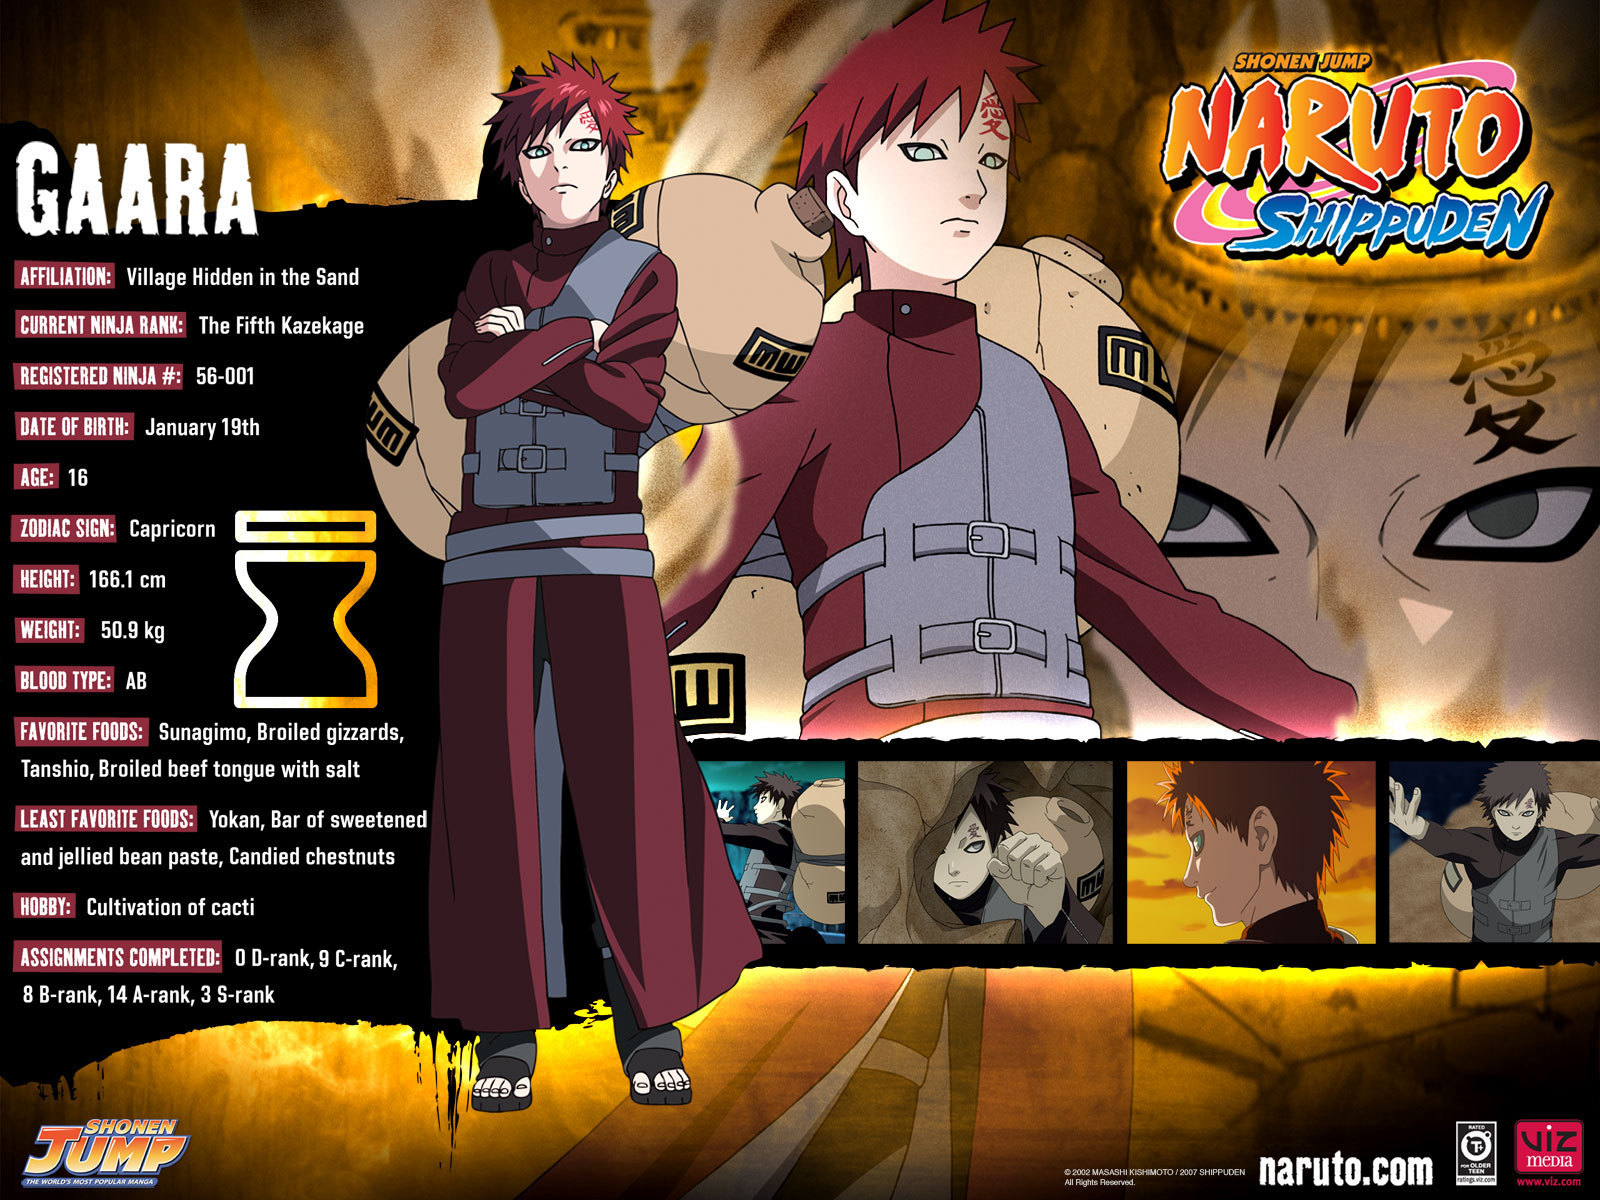 Naruto And Naruto Shippuden Images Narutoshippuden Hd Wallpaper And Background Photos